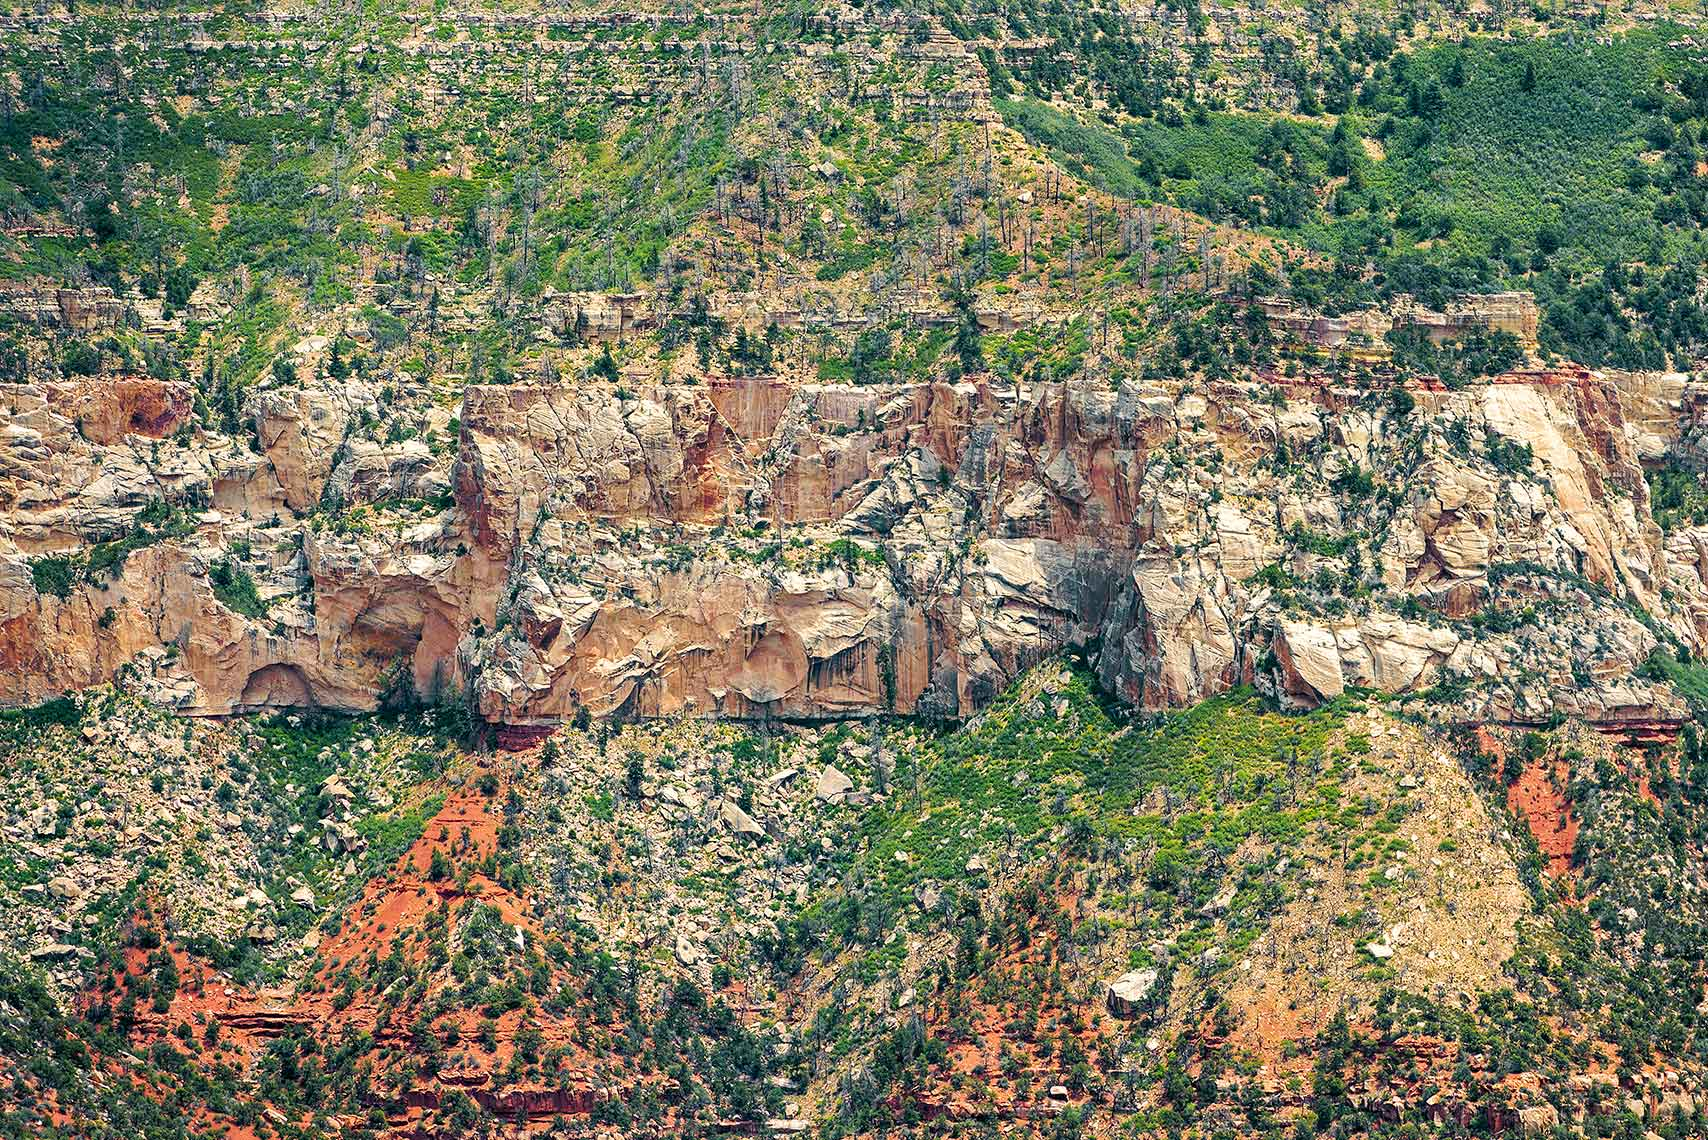 Zoe Wetherall / Aerial Landscape / Grand Canyon